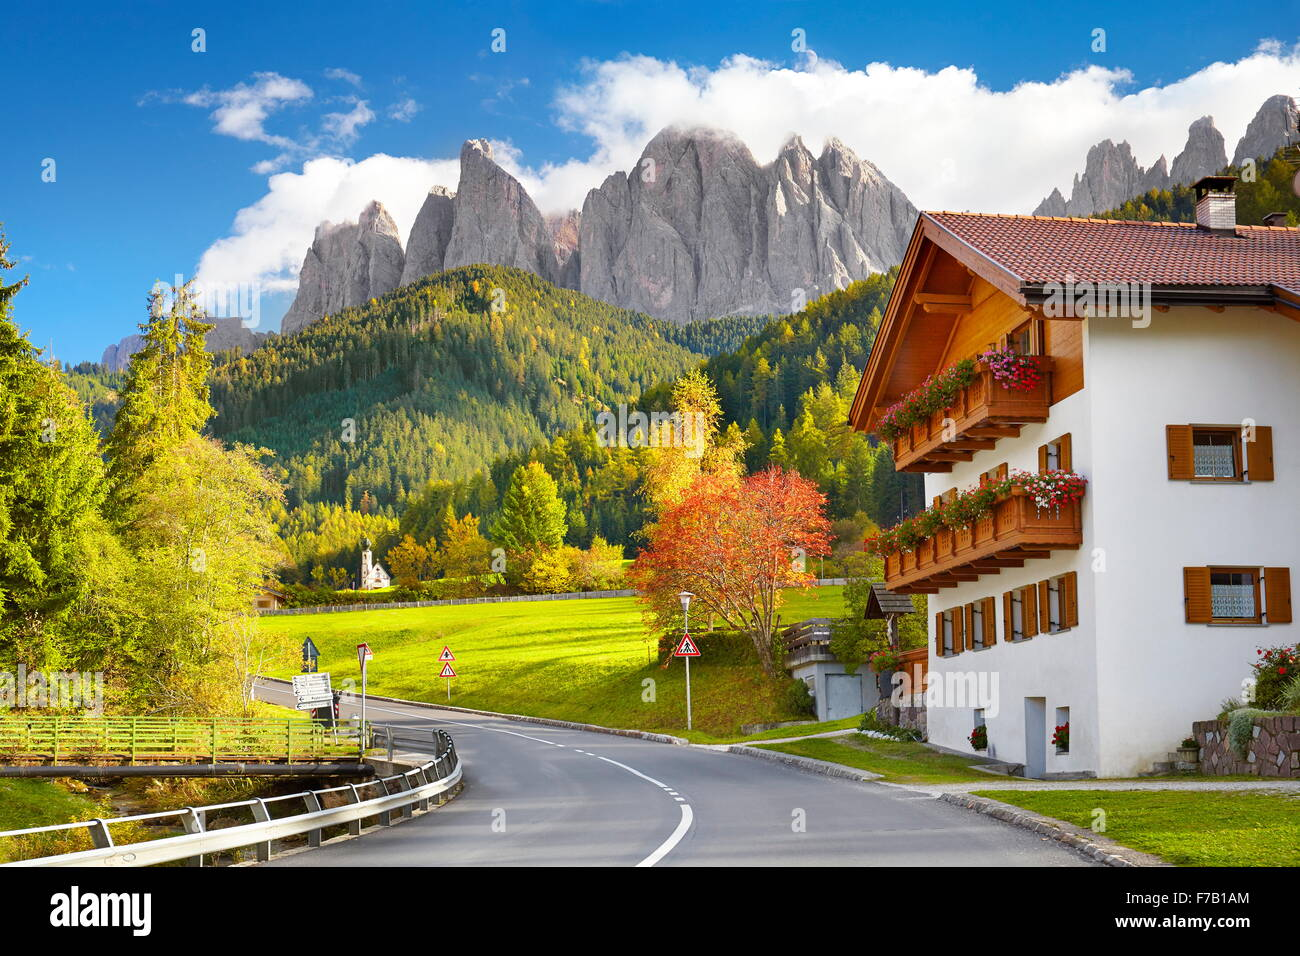 Val Di Funes, Tyrol Province, Alps, Dolomites Mountains, Italy - Stock Image